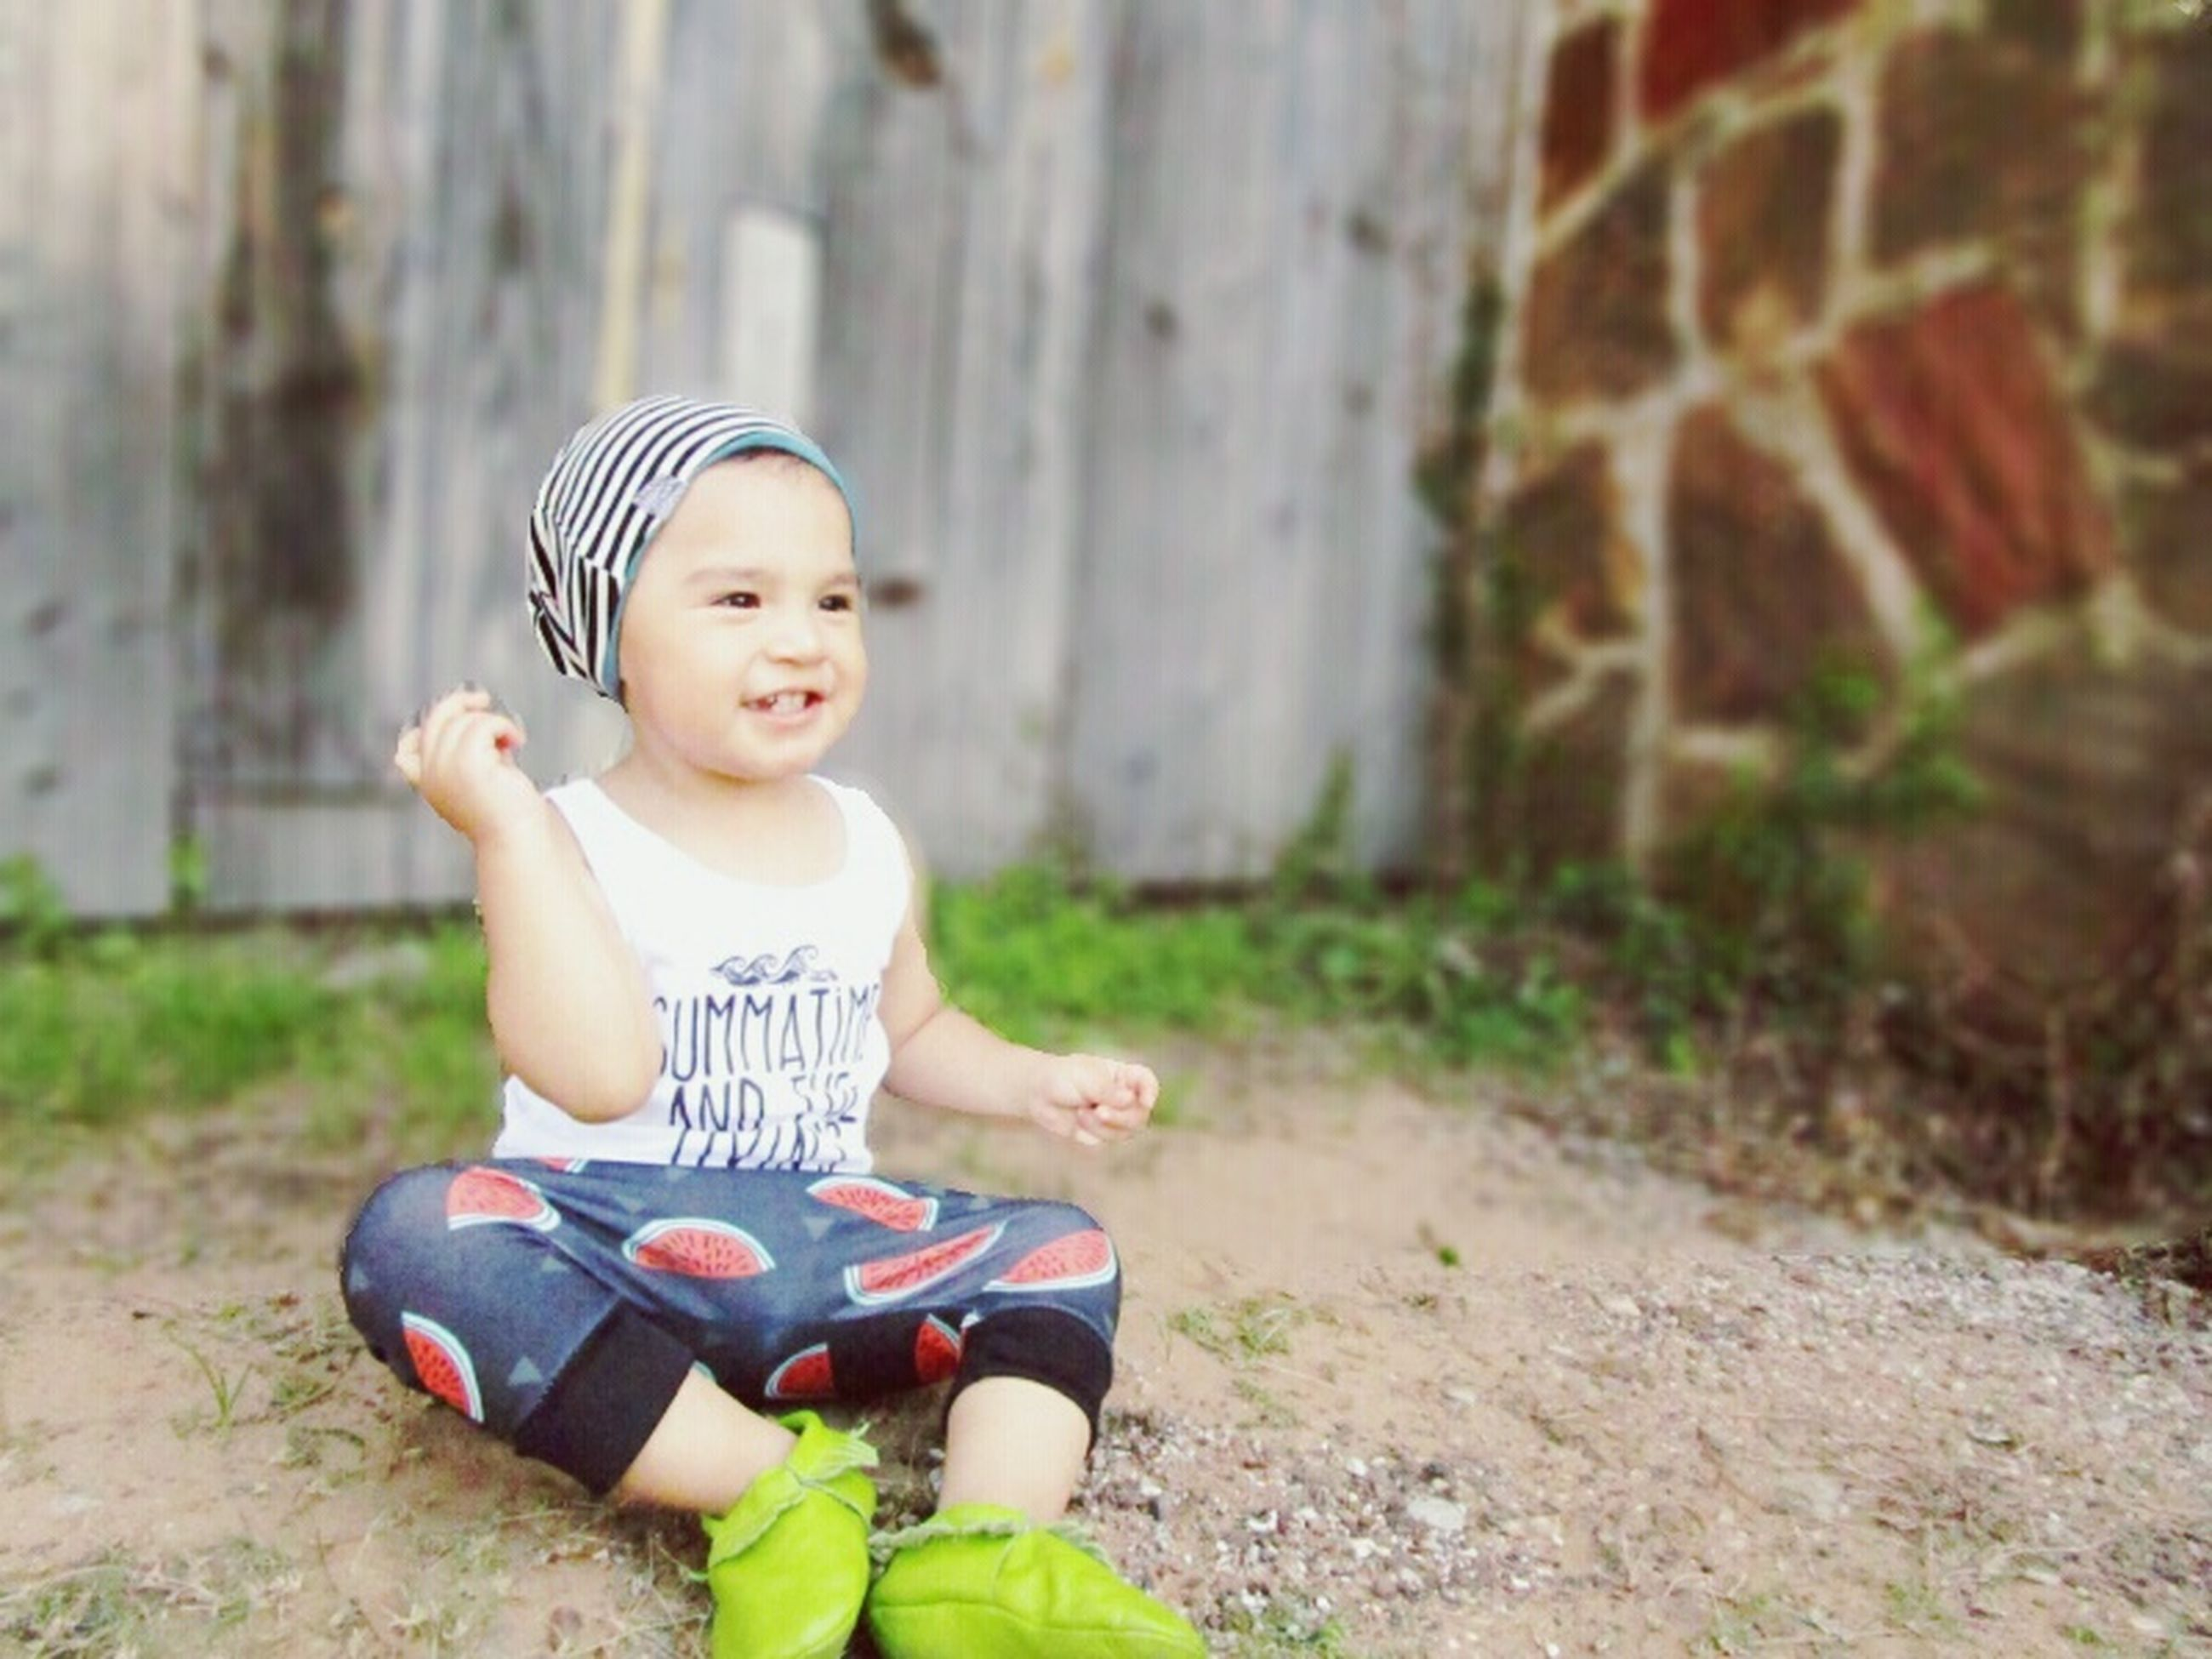 childhood, elementary age, person, boys, cute, innocence, girls, lifestyles, leisure activity, casual clothing, playing, full length, playful, happiness, preschool age, smiling, toy, looking at camera